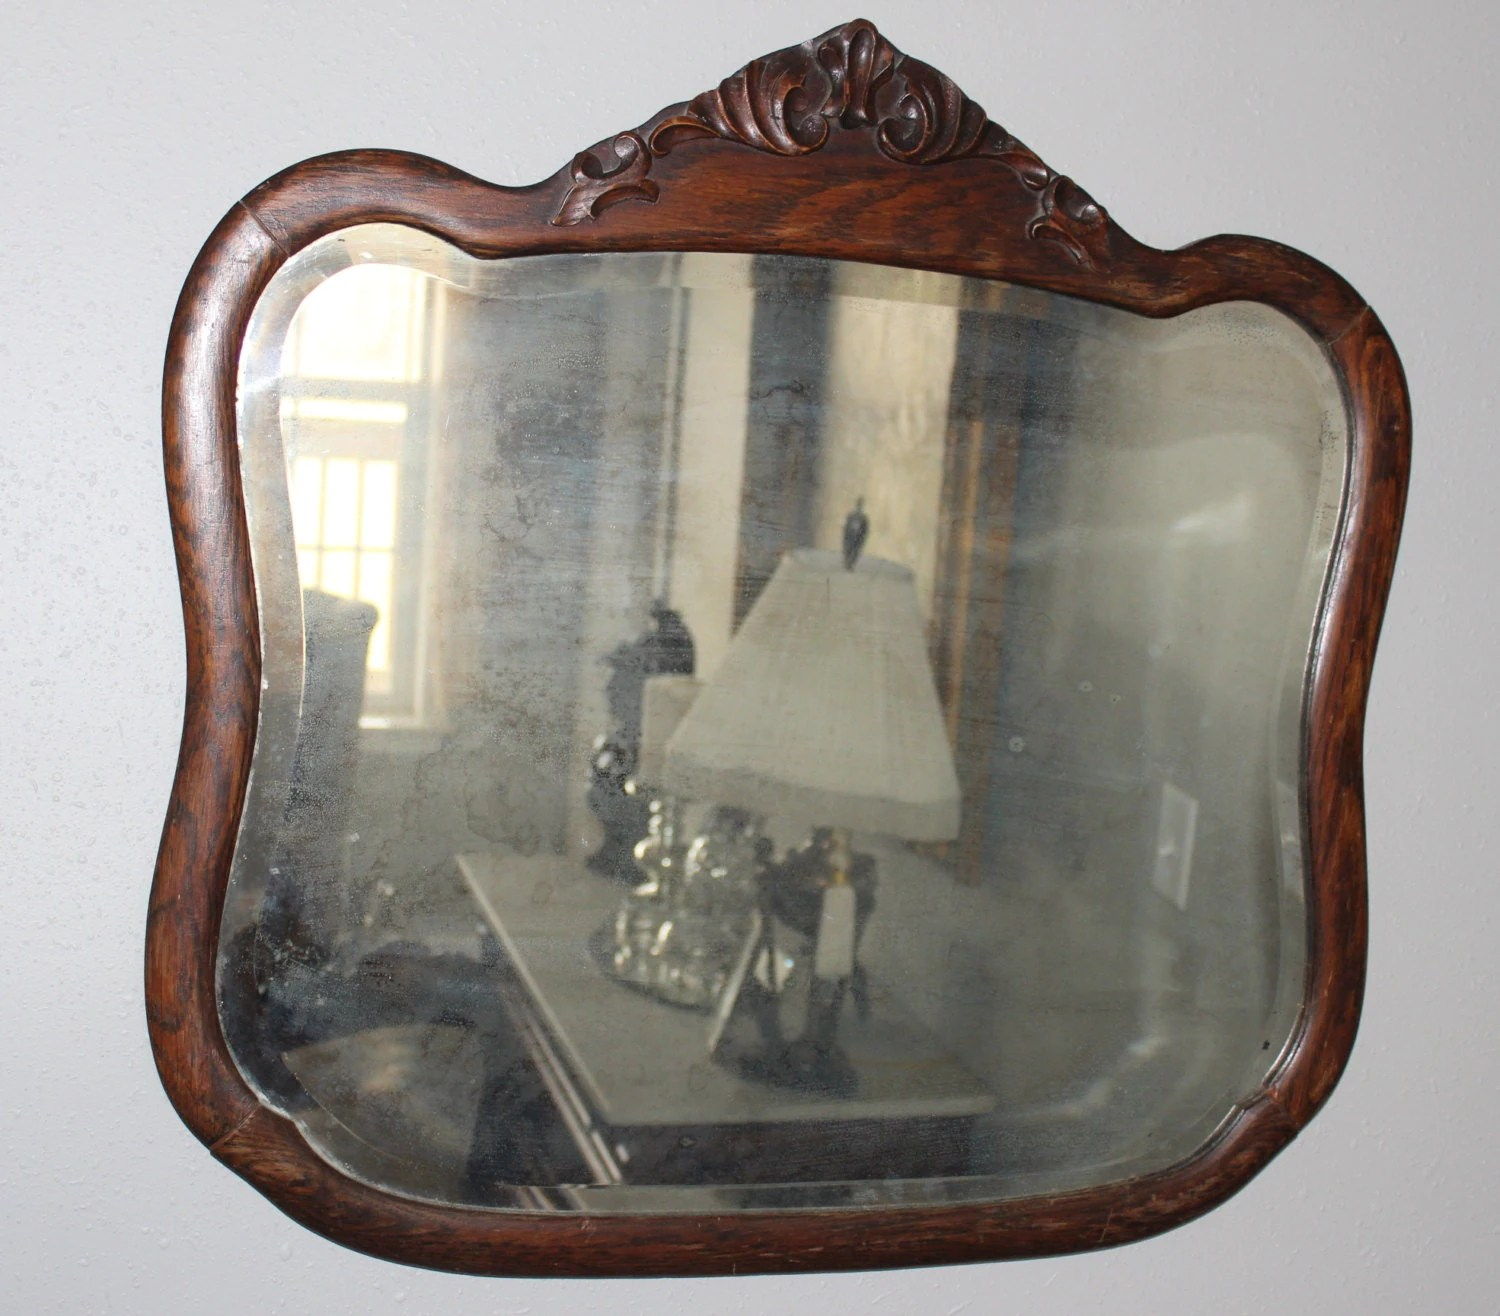 Unique Shaped Mirror Unique Shaped Vintage Beveled Mirror In Carved Oak Frame